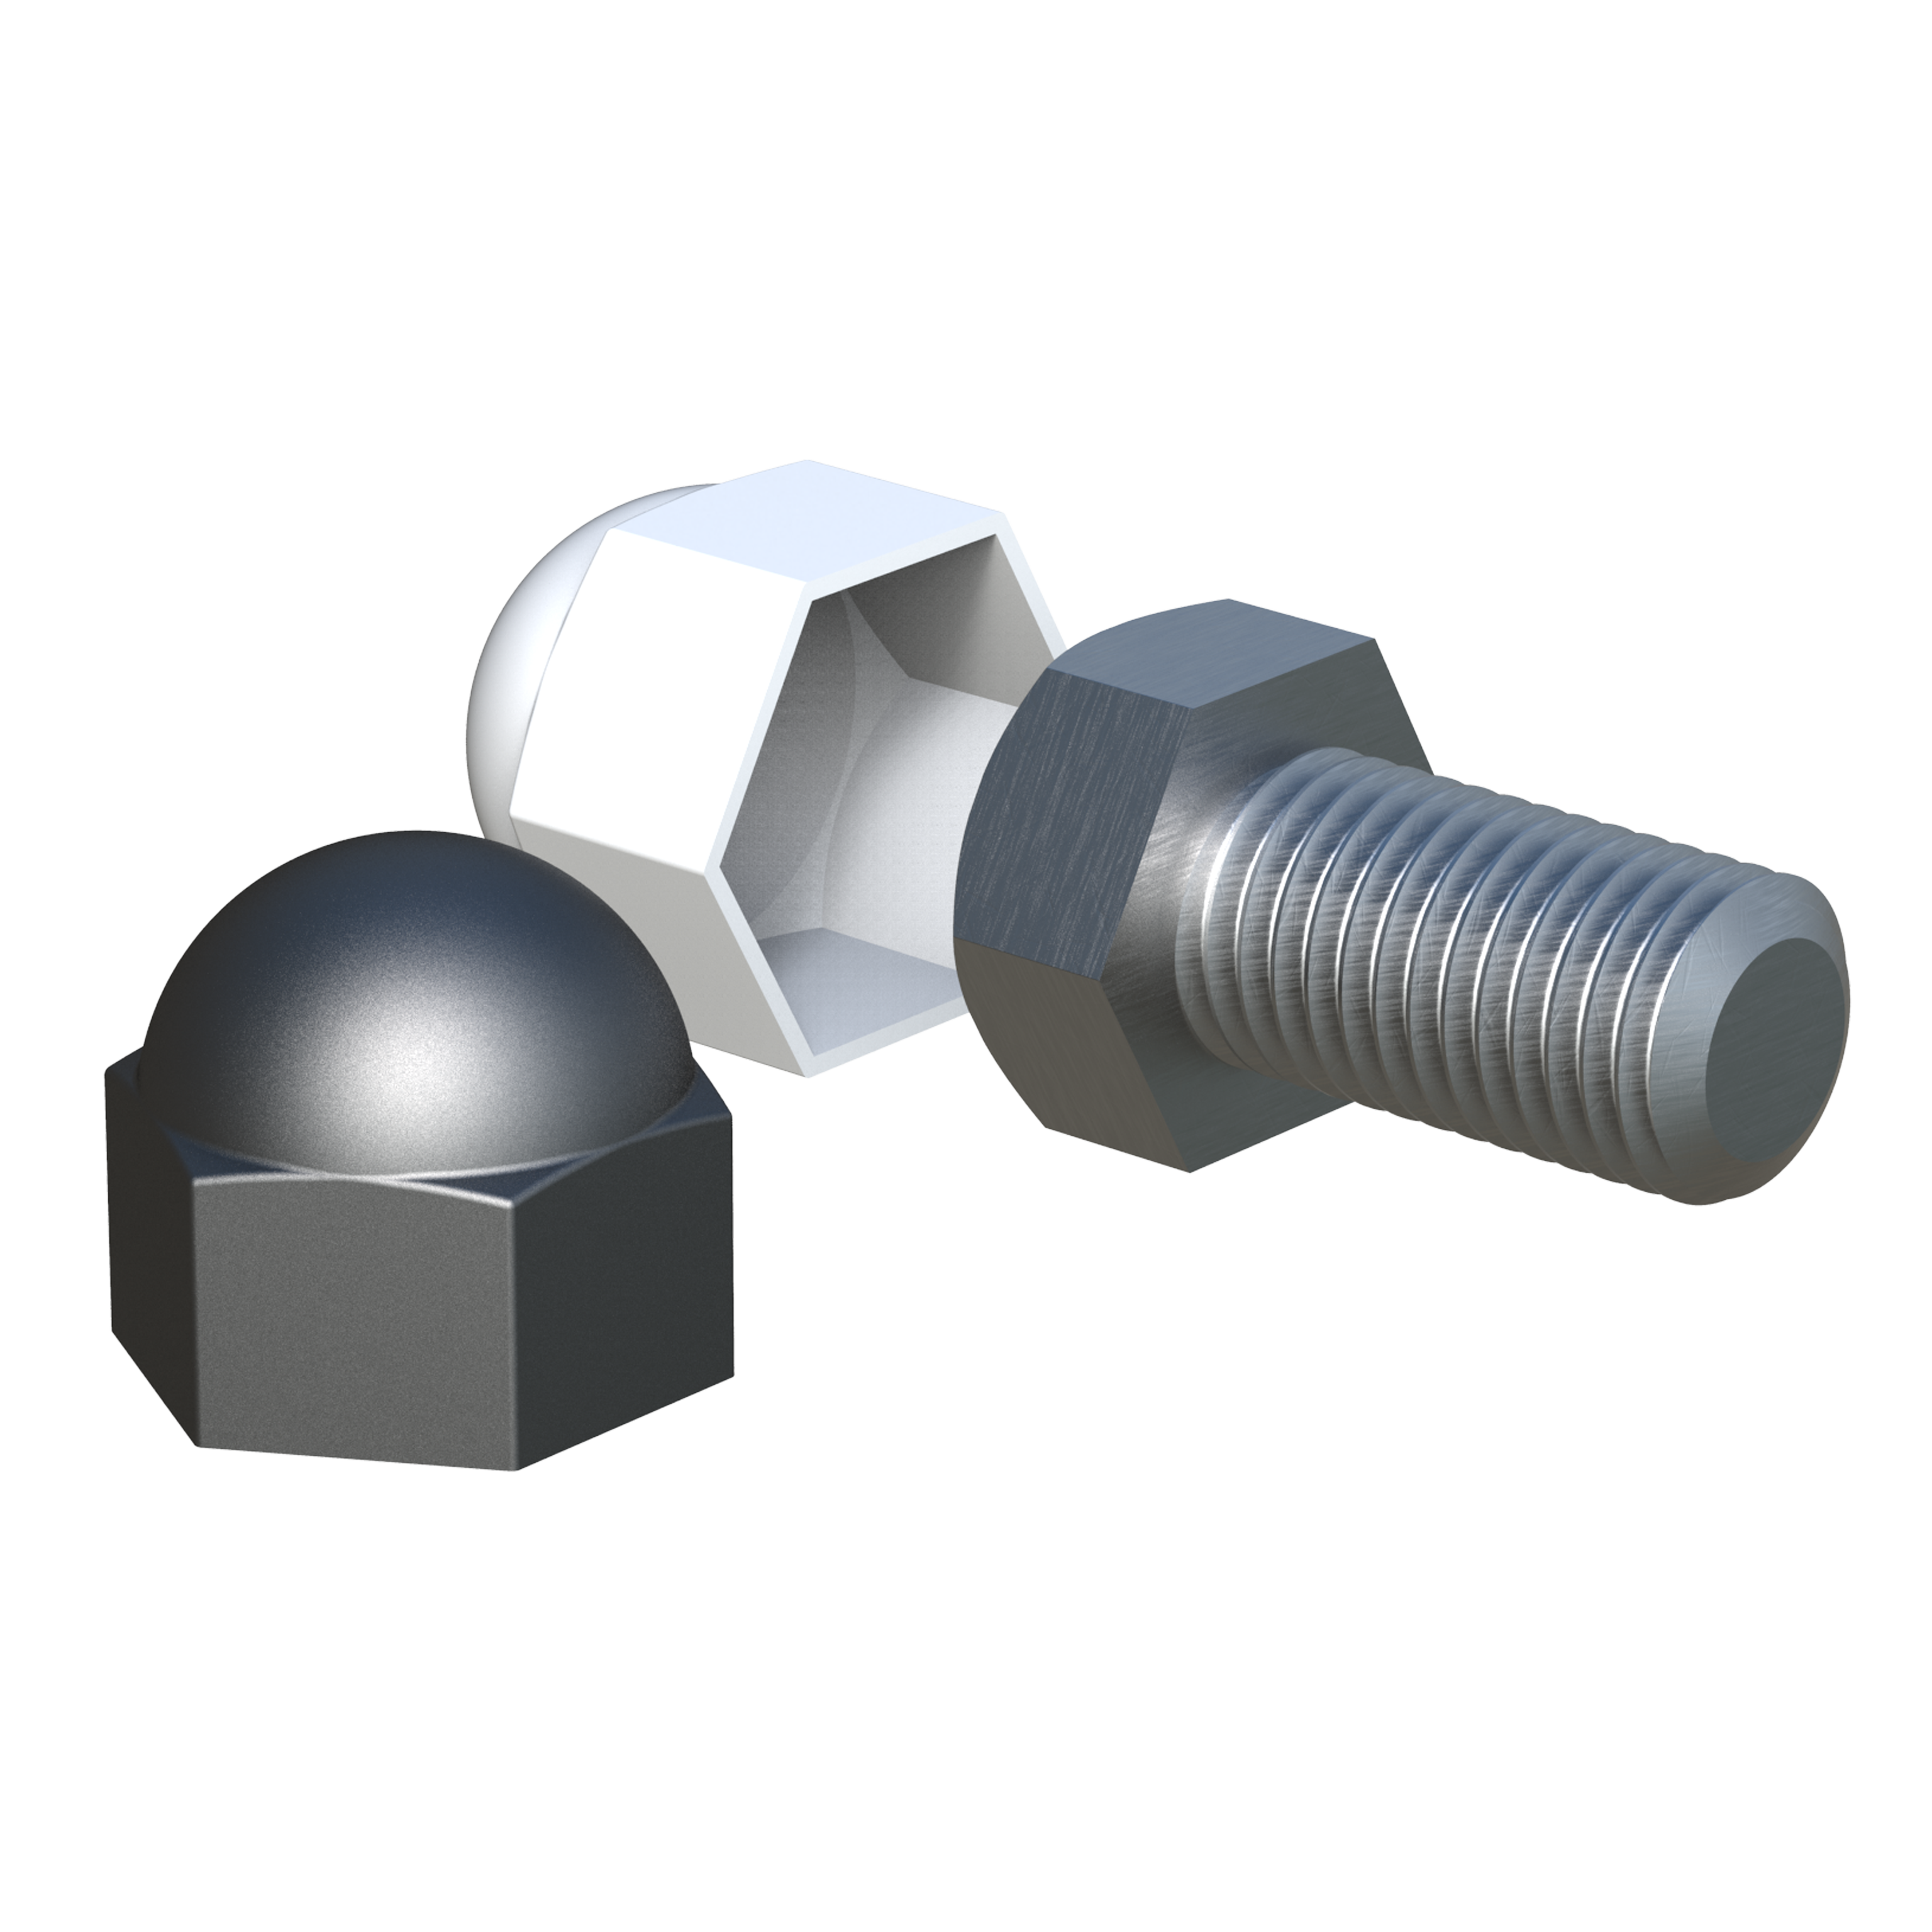 Cap for screws and hex nuts